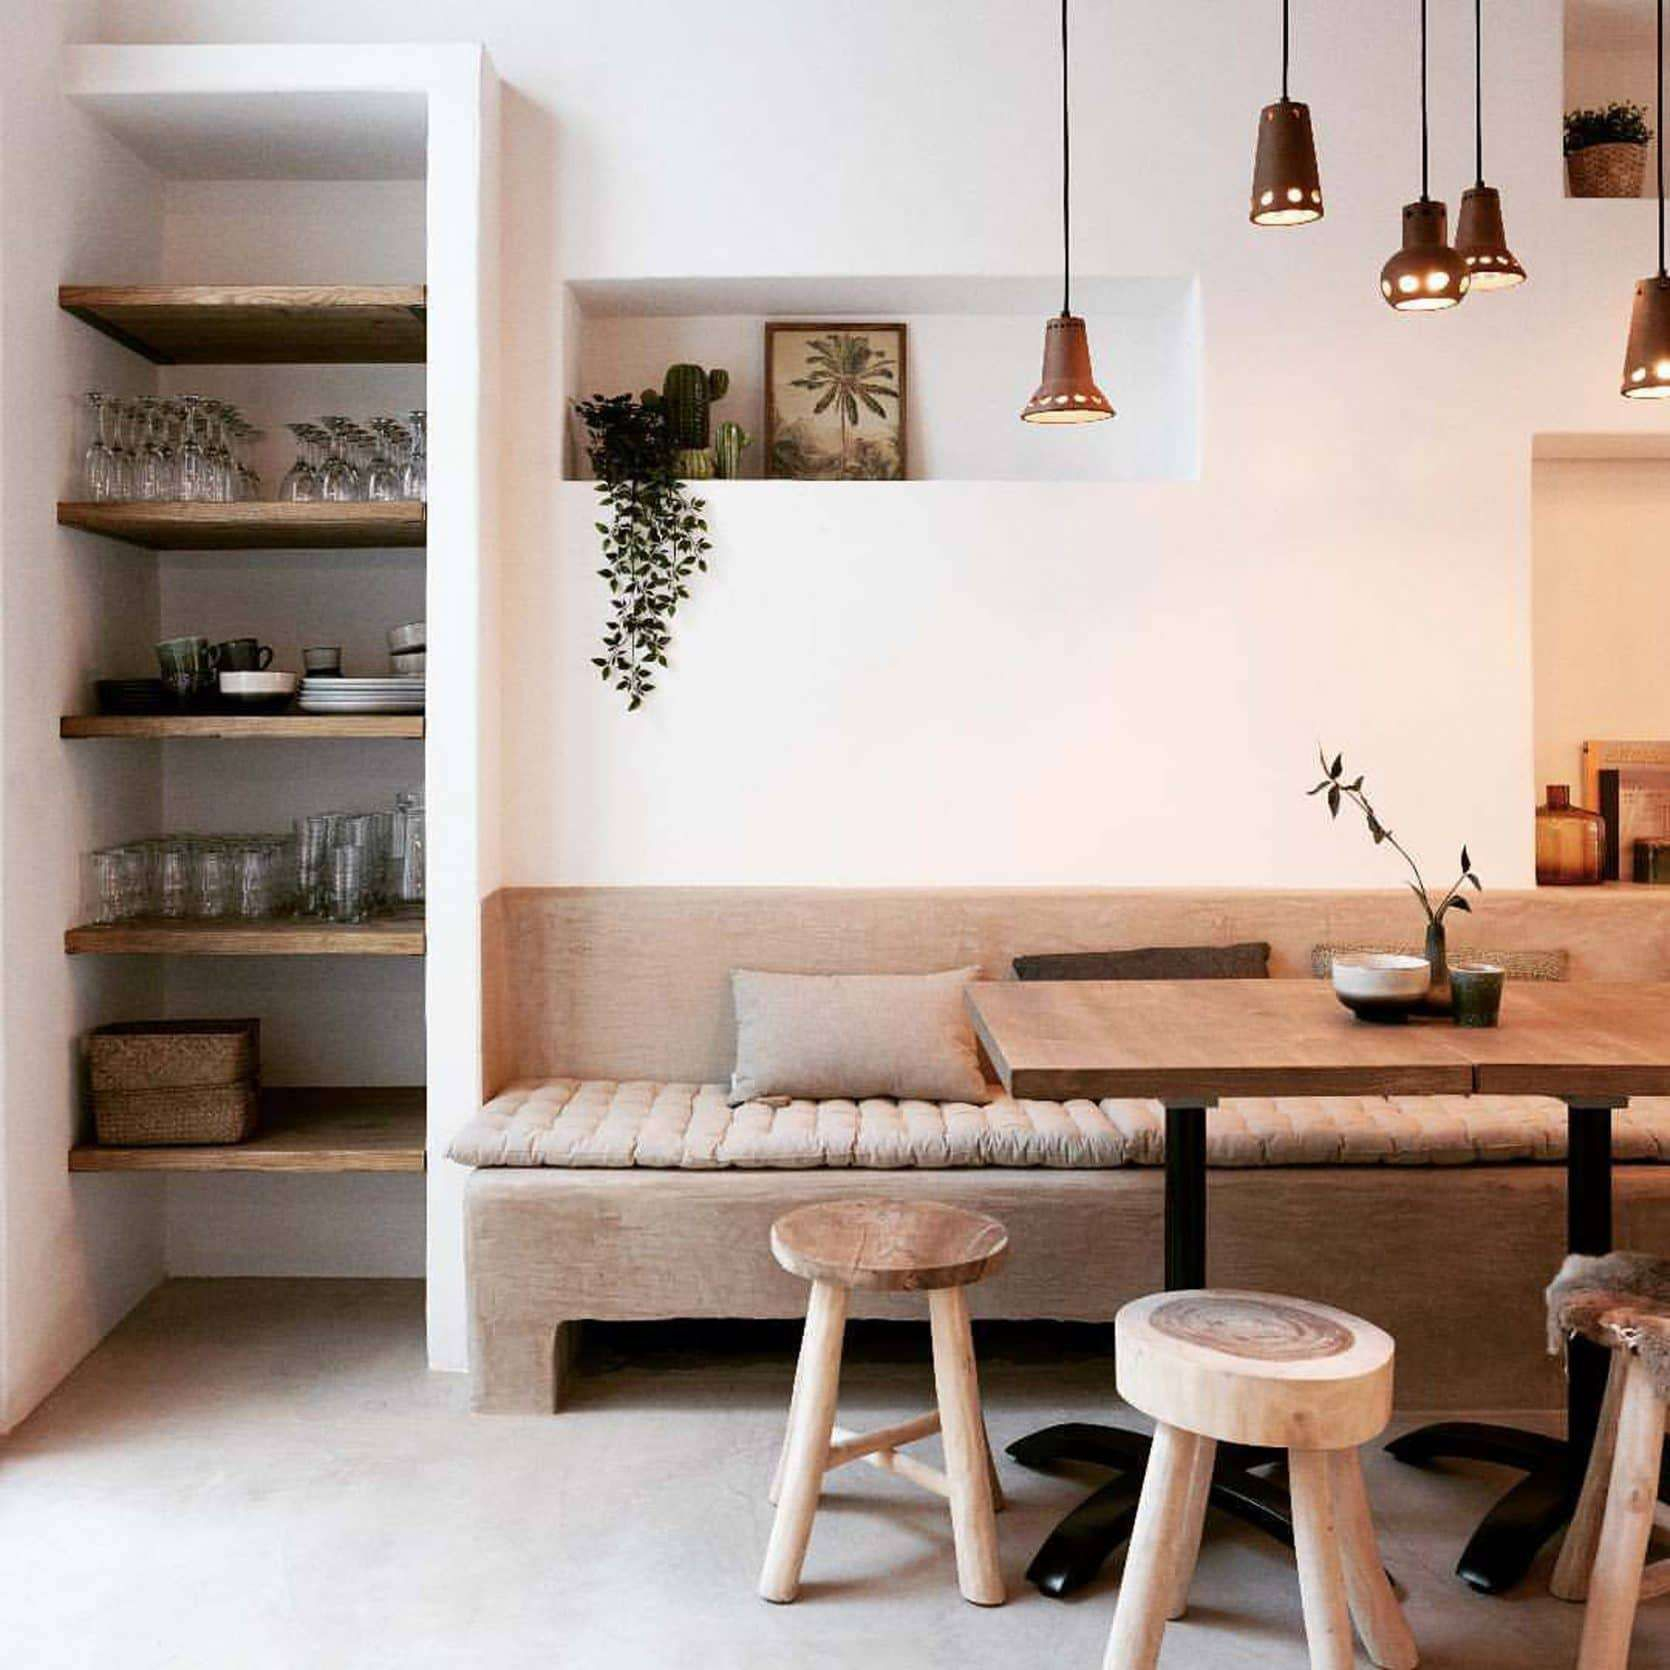 Mountain House Monday: An Update on the Dining Banquette + Ask the Audience